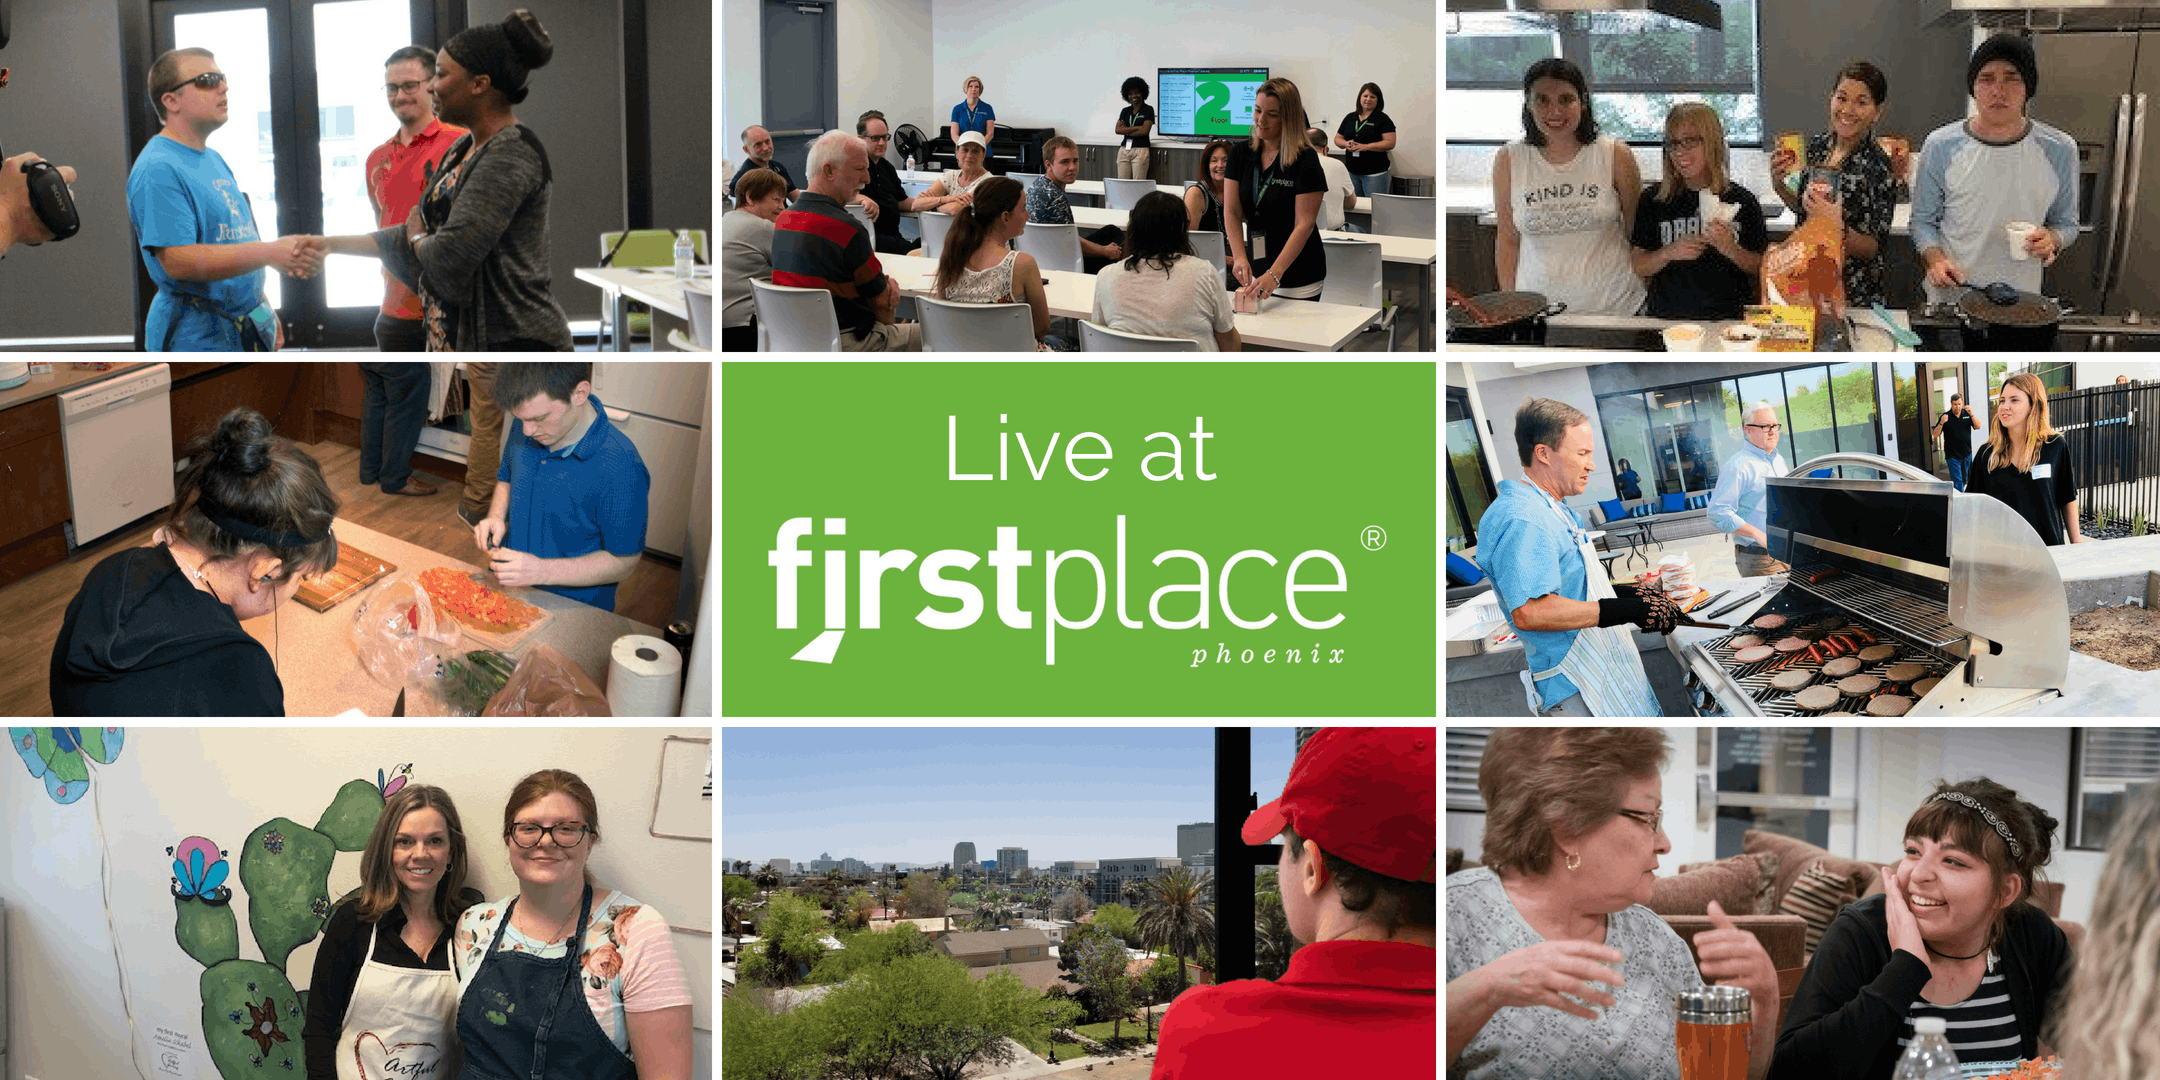 Explore First Place–Phoenix - February 19